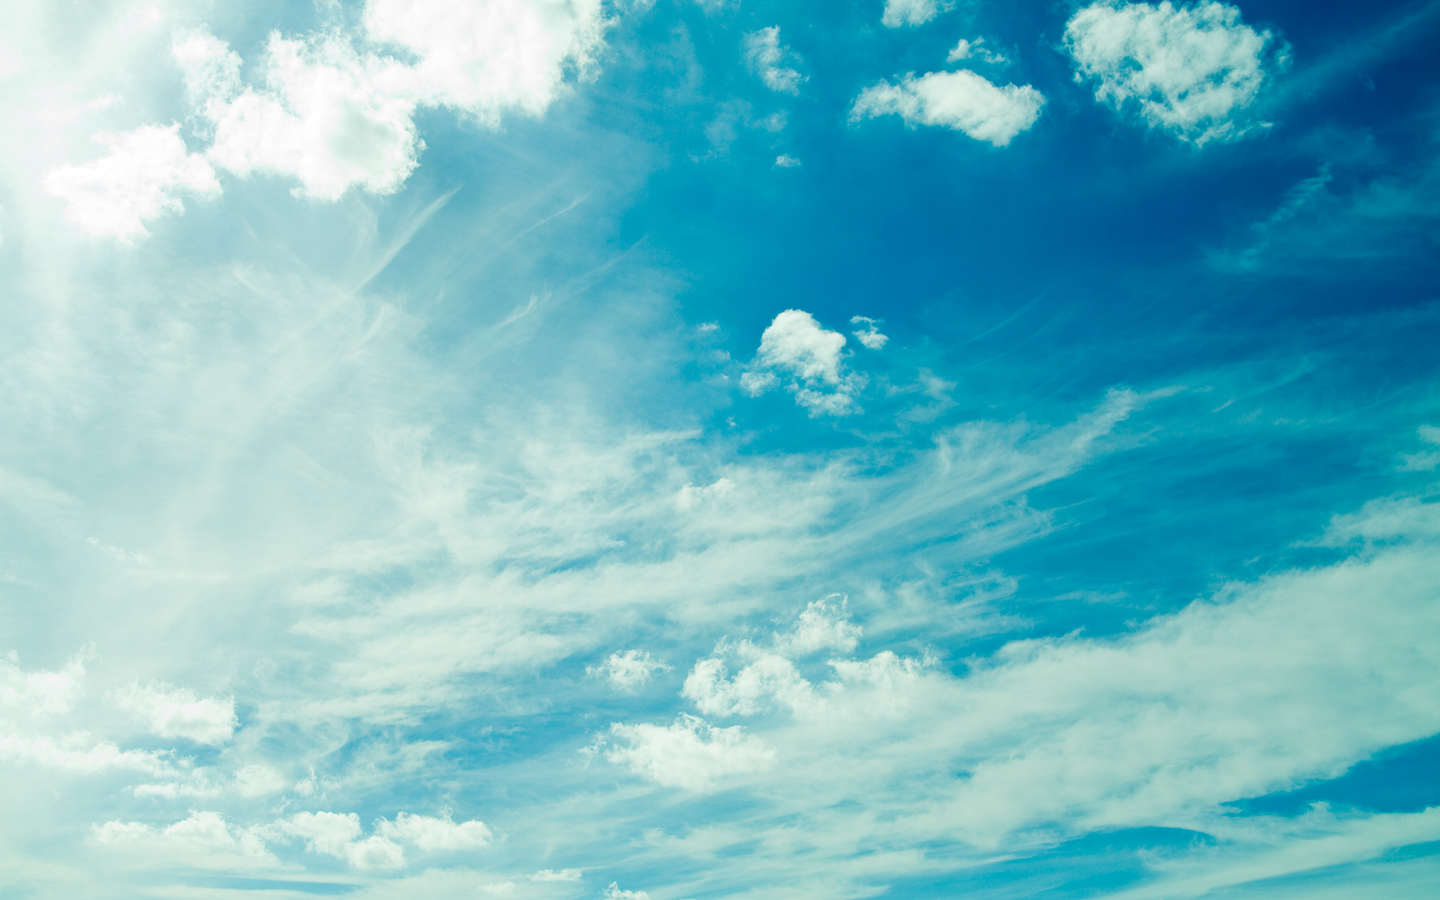 HD Sky Clouds Wallpapers Download Wallpapers in HD for your 1440x900